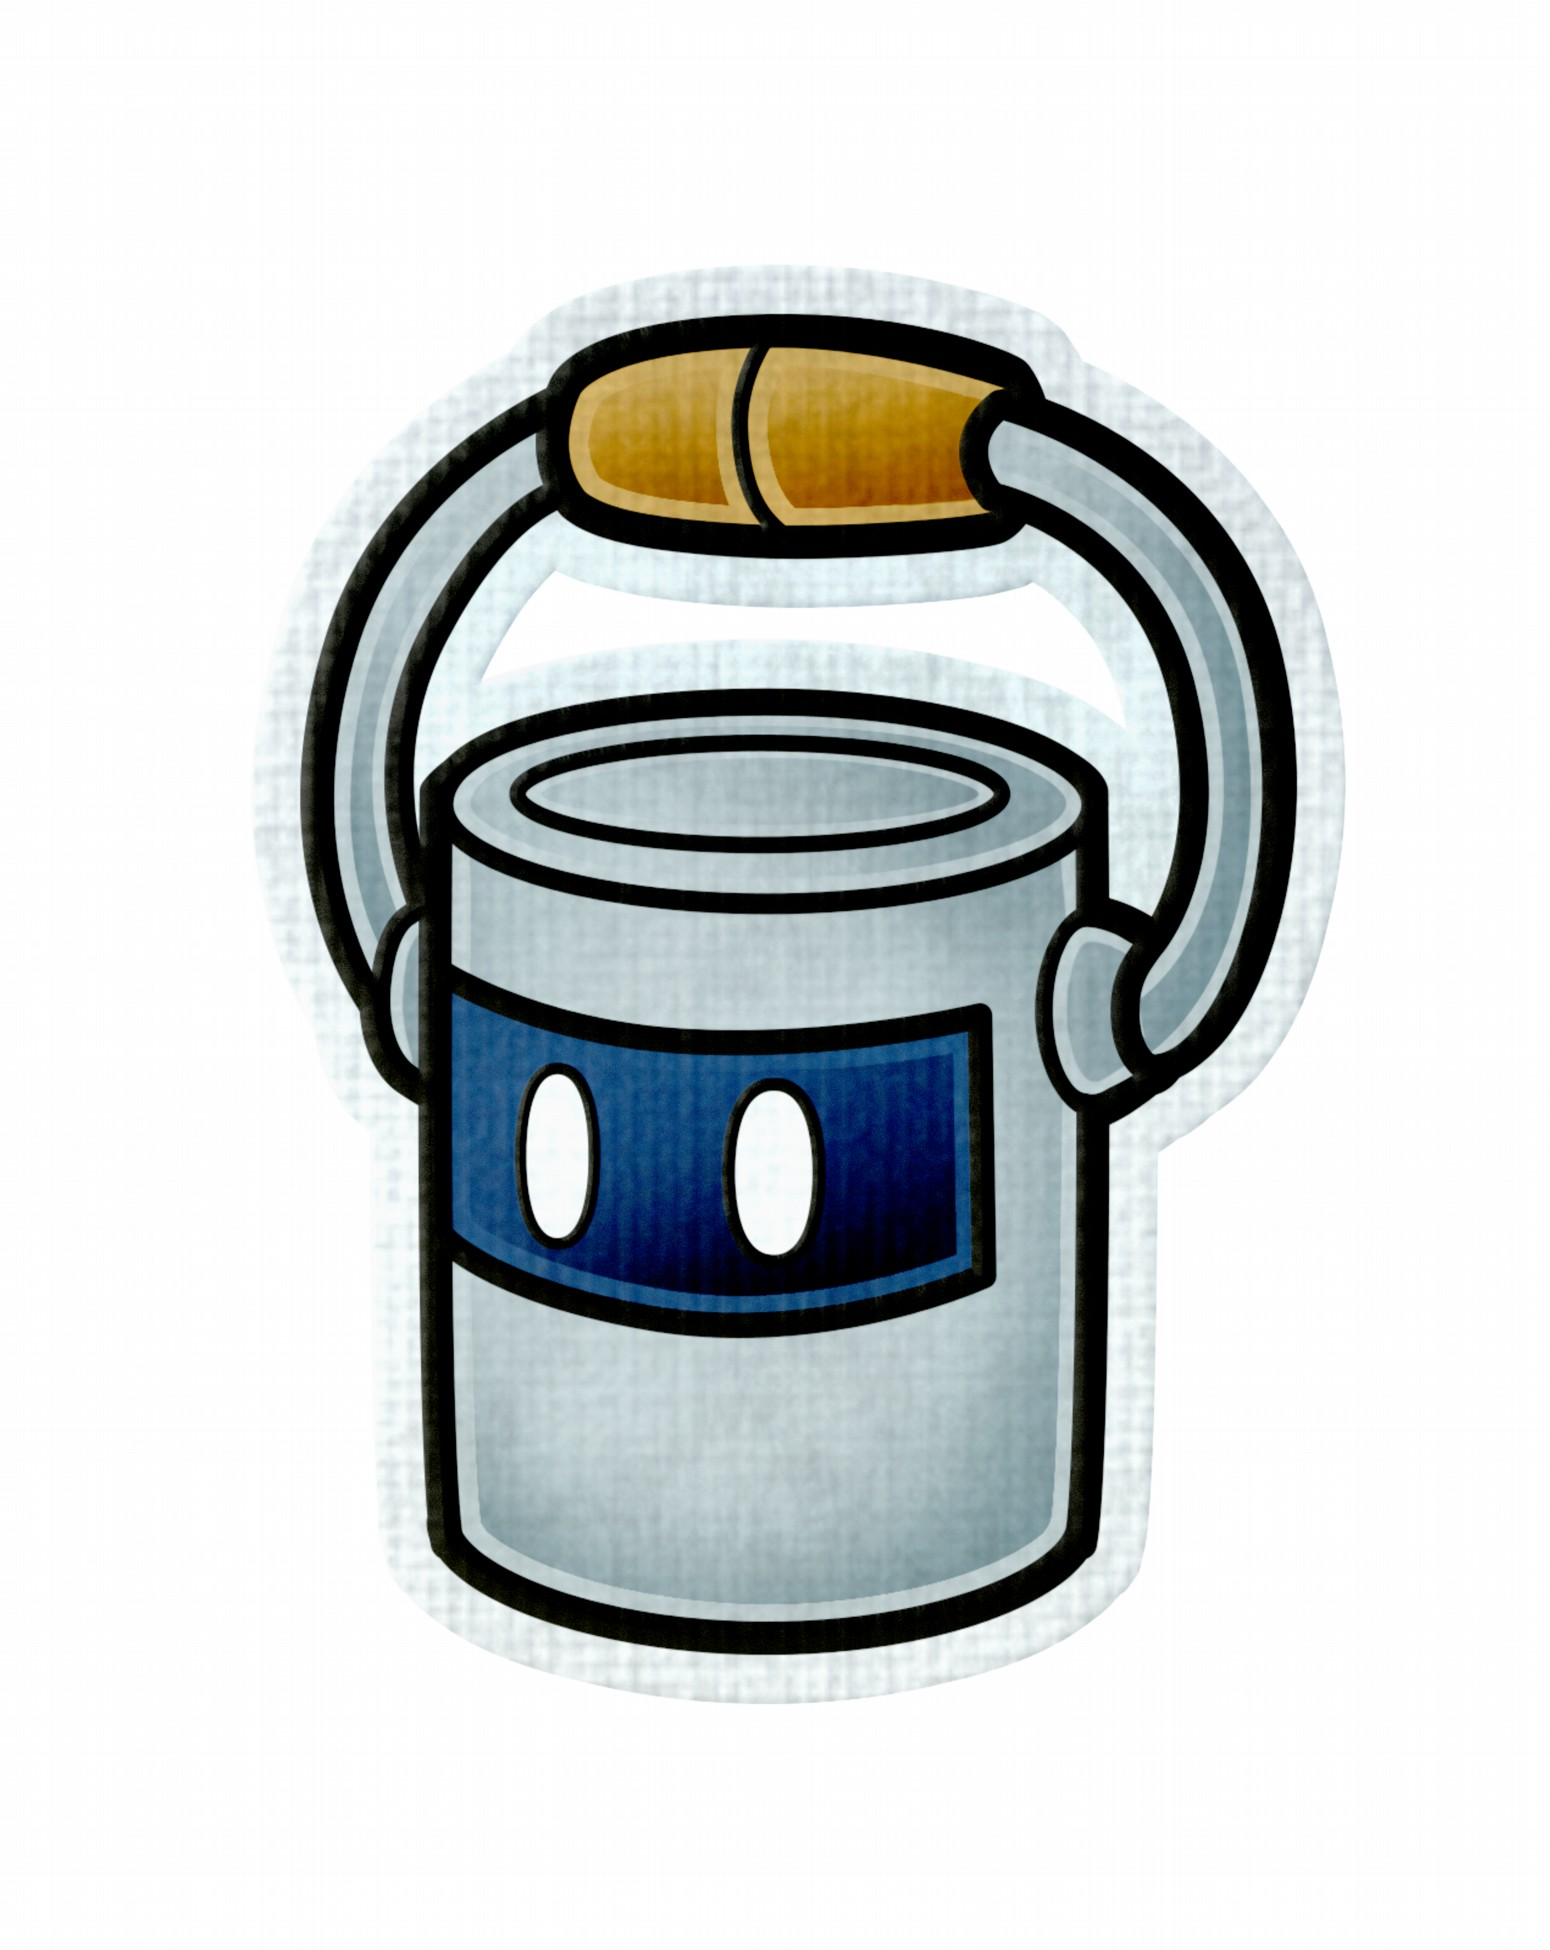 Paper mario coloring pages to print - Paper Mario Art_ 16